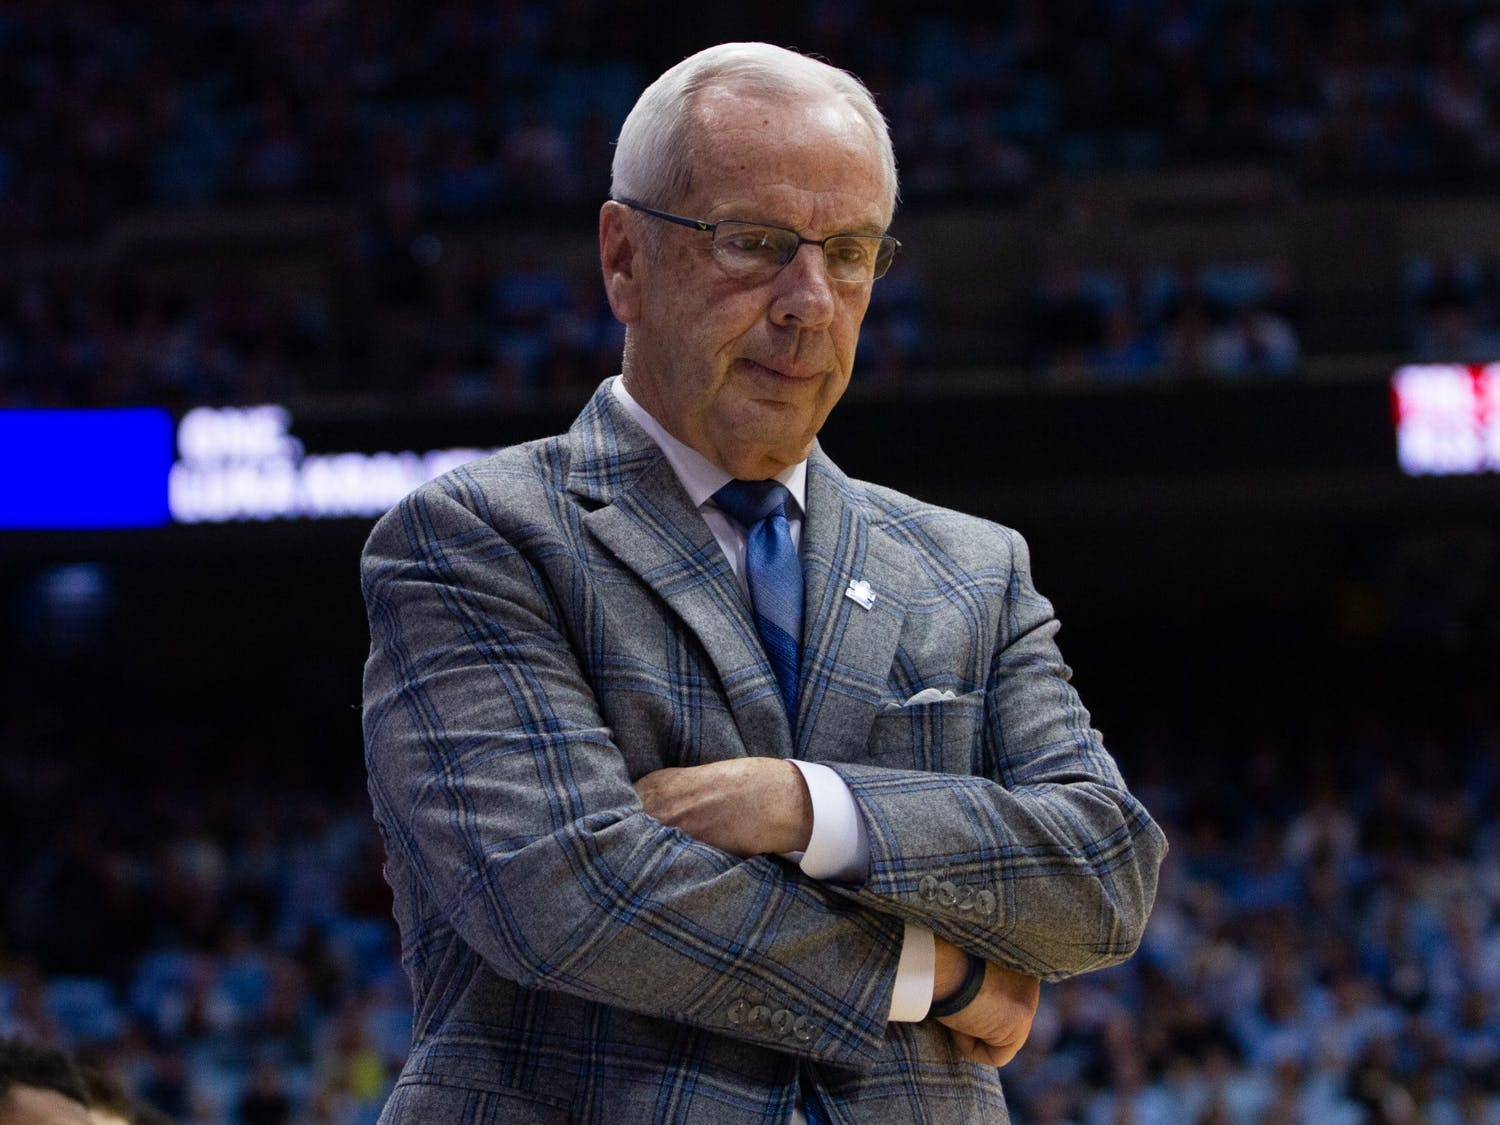 Head Coach Roy Williams pauses during the game against Boston College in the Smith Center on Saturday, Feb. 1, 2020. UNC lost to Boston College 71-70.